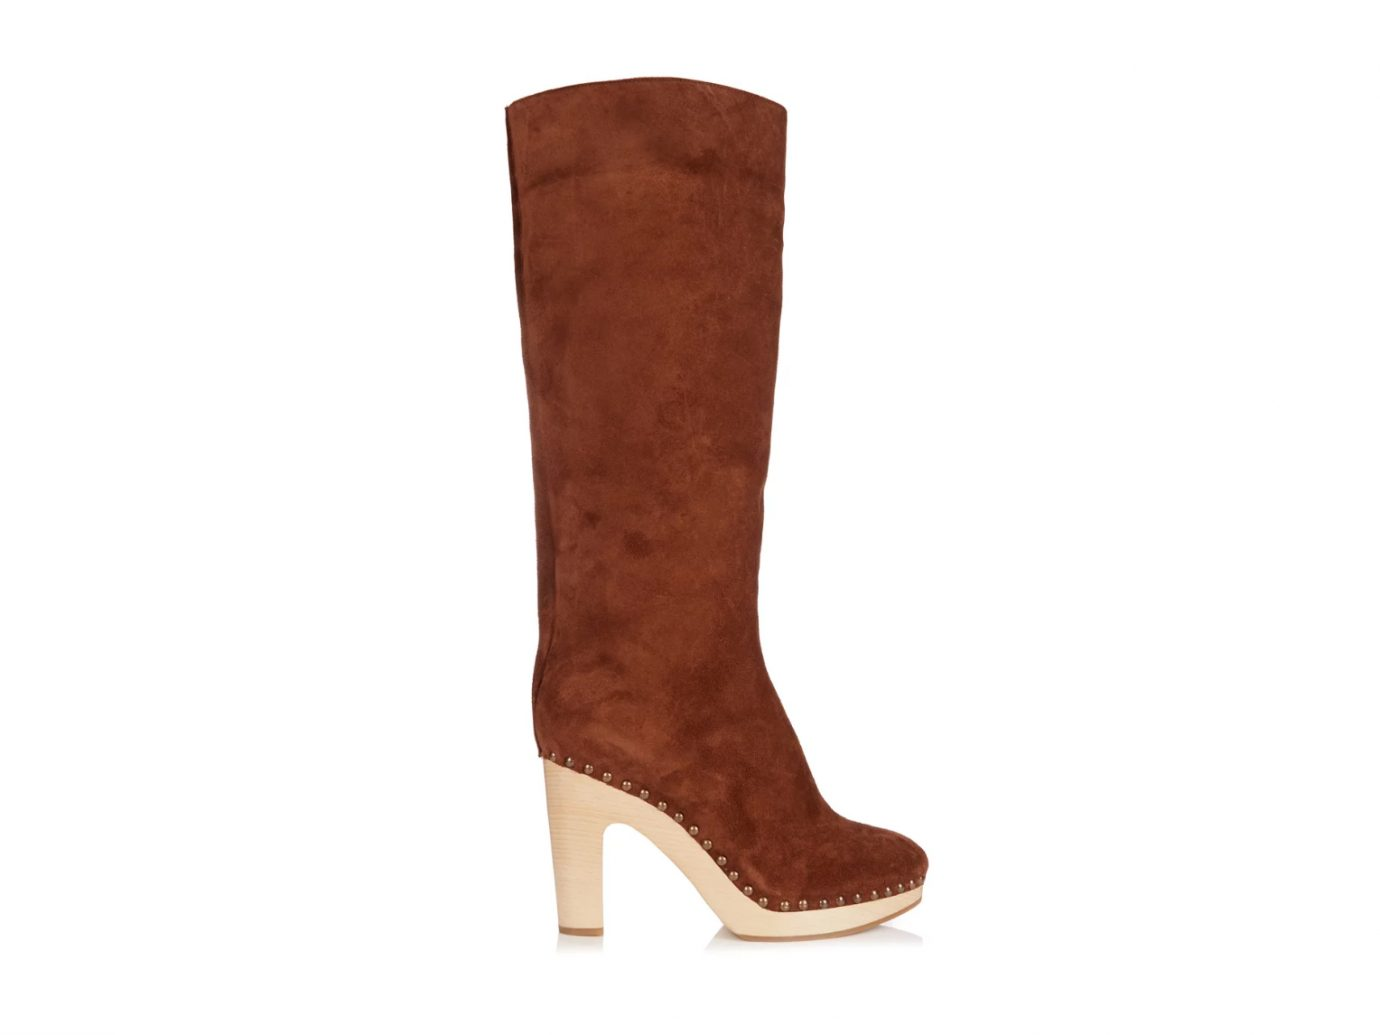 ÁLVARO Shearling-lined suede boots